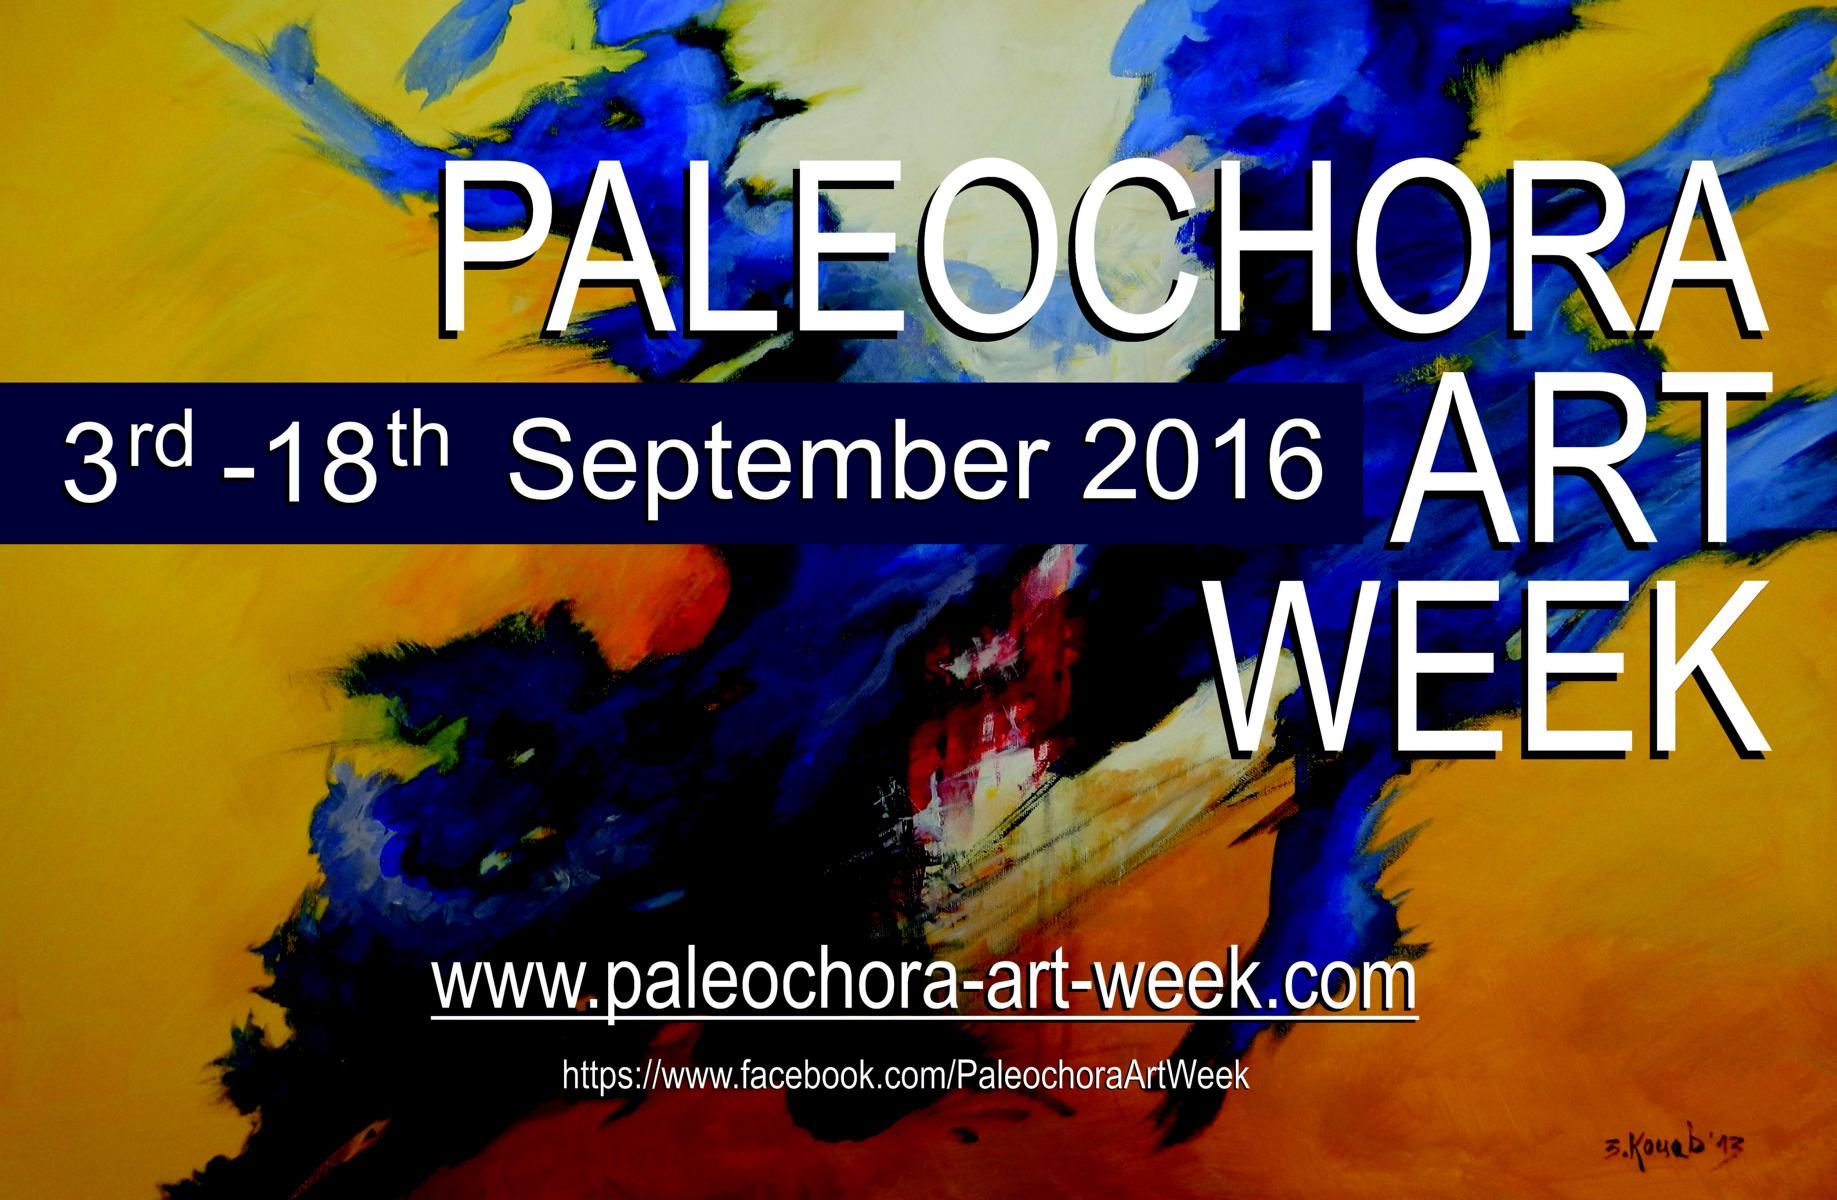 Paleochora Art Week 2016